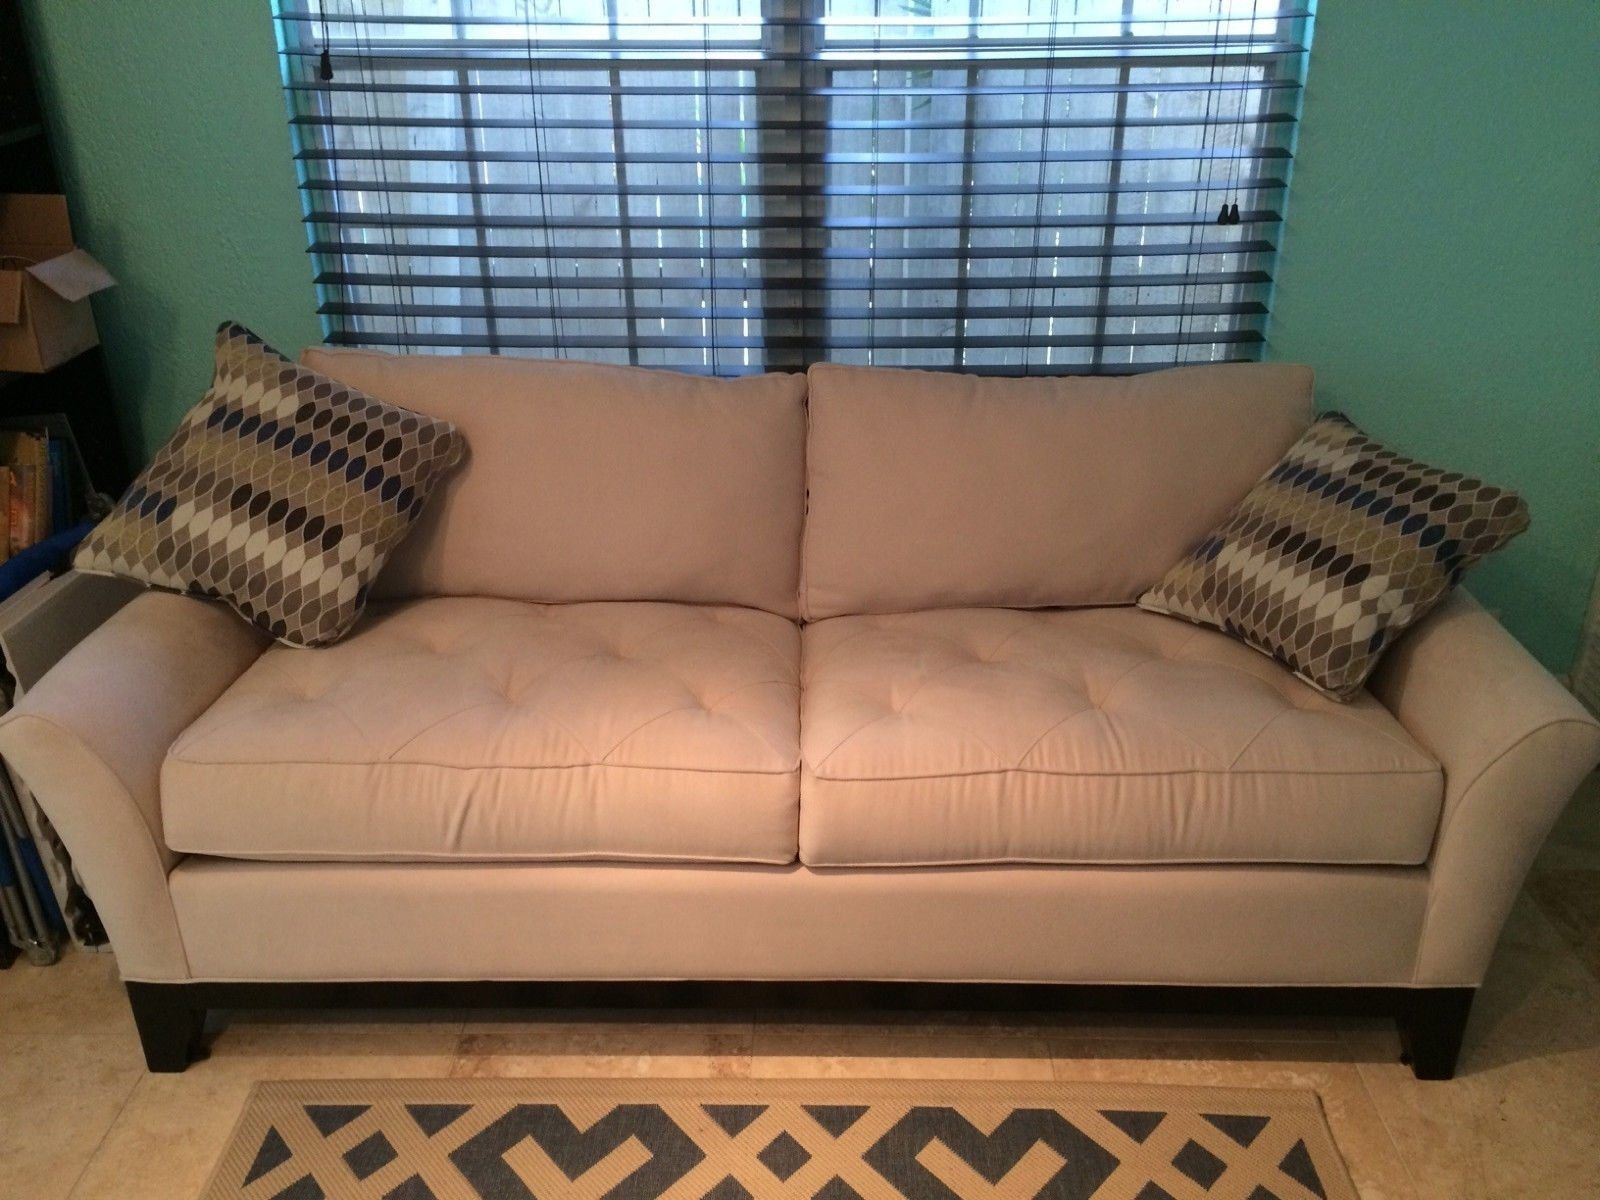 High Quality Sleeper Sofa 5 Sources For